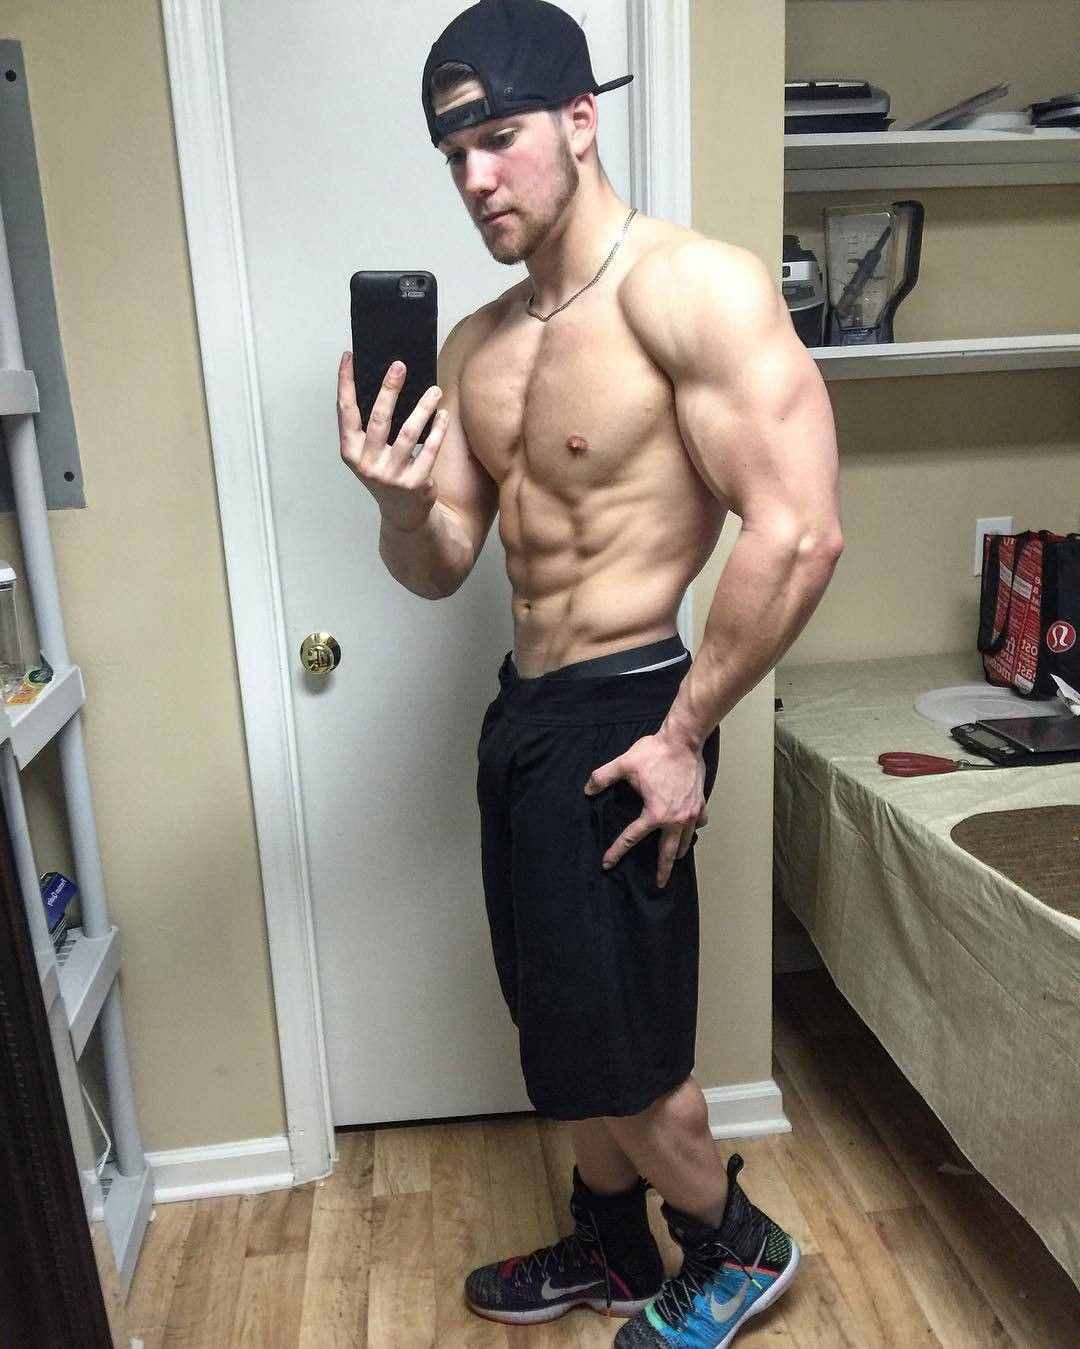 muscled-dude-mirrored-selfie